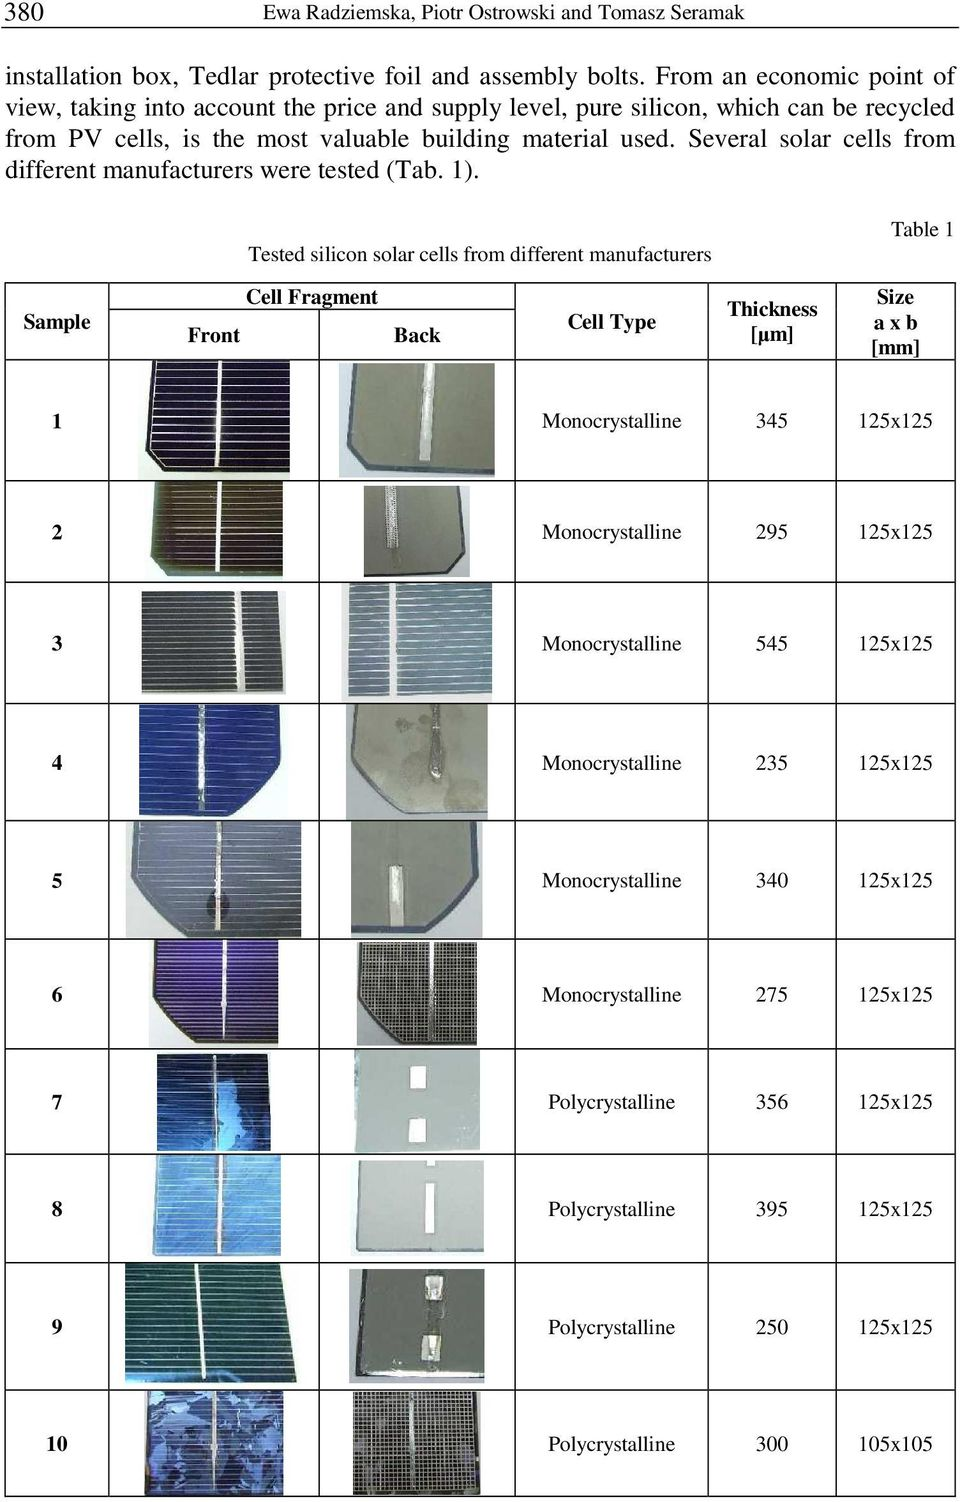 Several solar cells from different manufacturers were tested (Tab. 1).